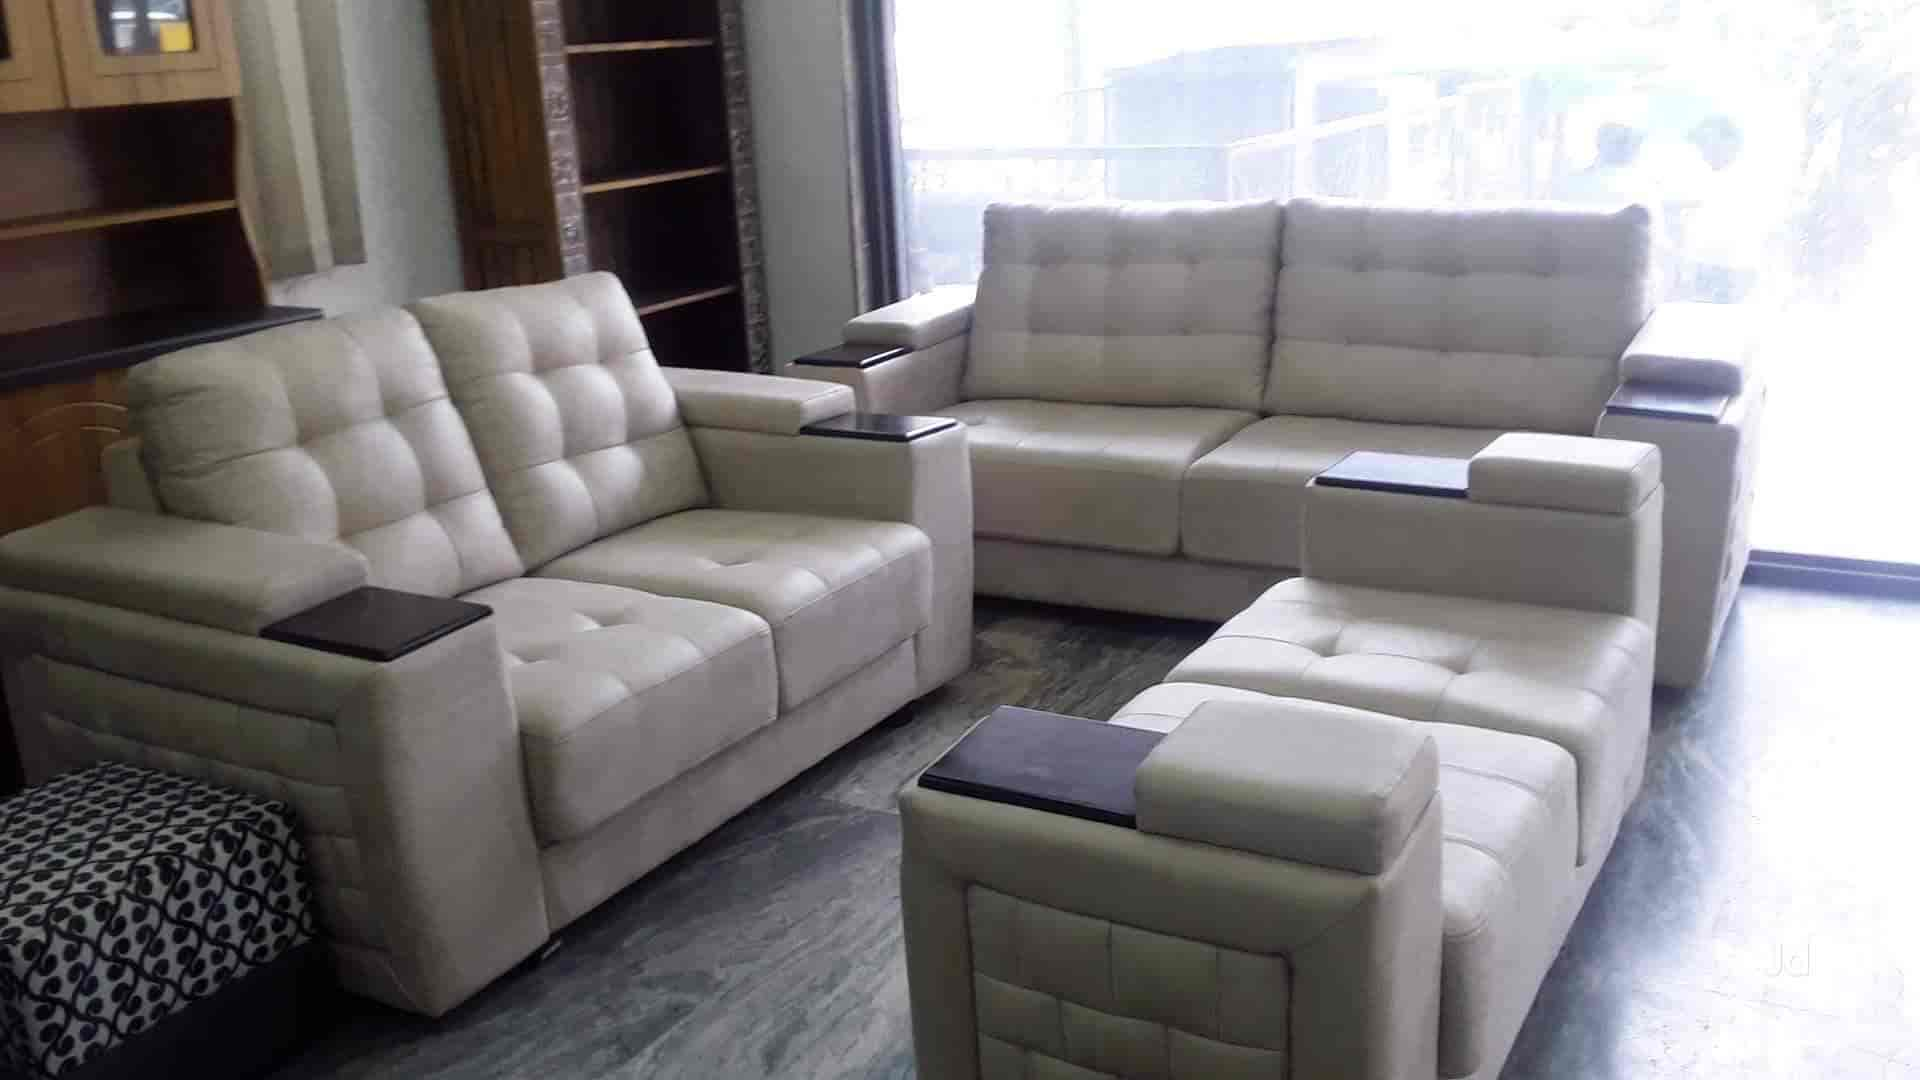 Furniture City Btm Layout 2nd Stage Furniture Dealers In